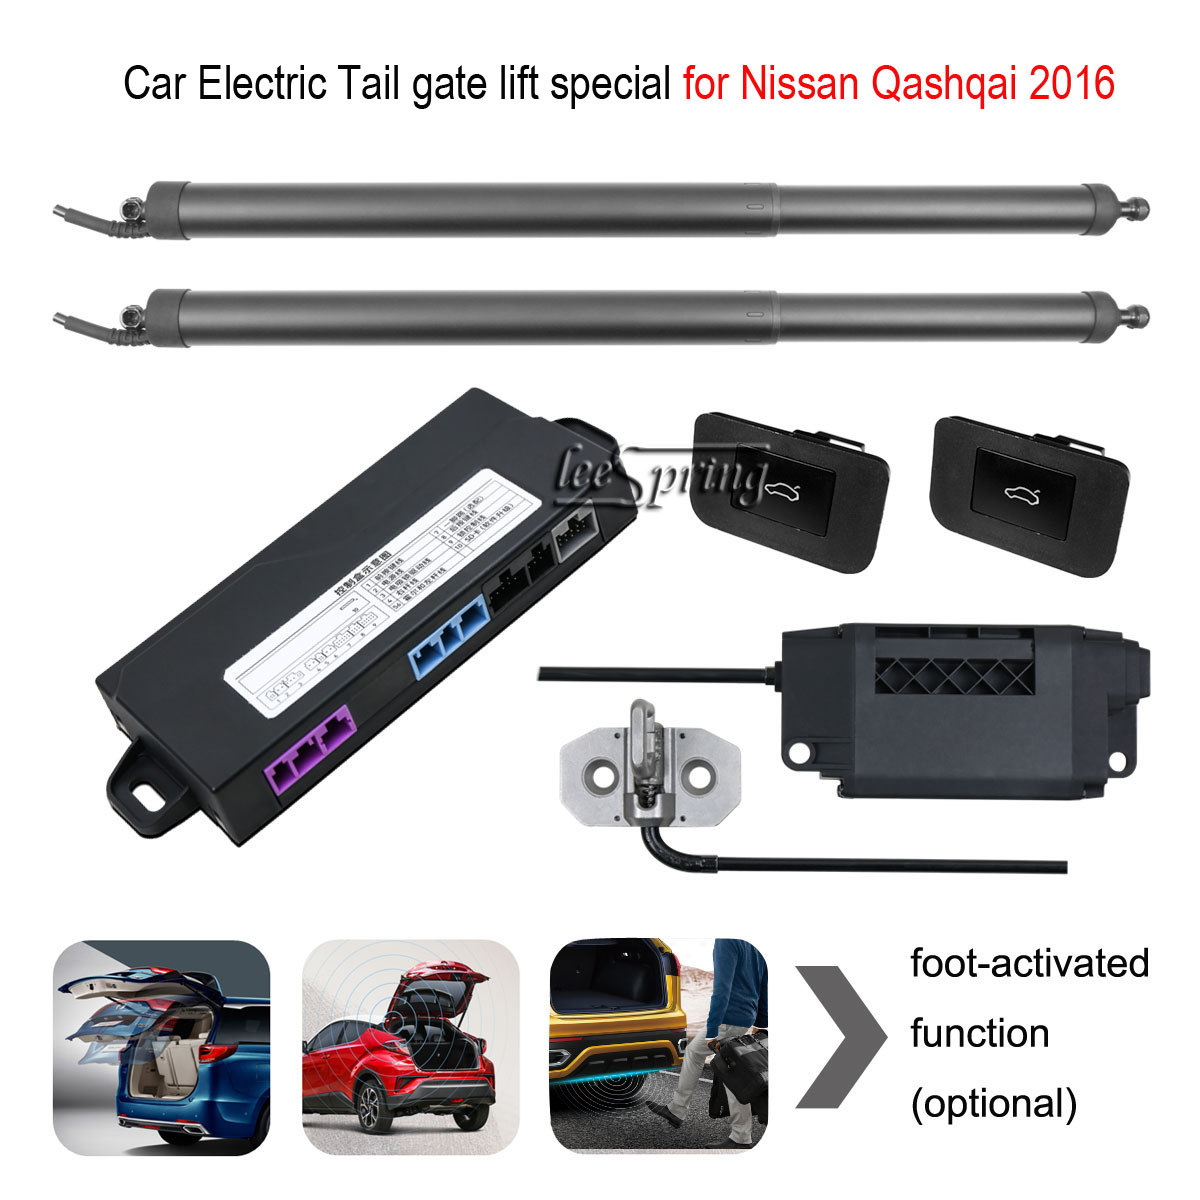 Car Electric Tail Gate Lift Special For Nissan Qashqai 2016 Easily For You To Control Trunk